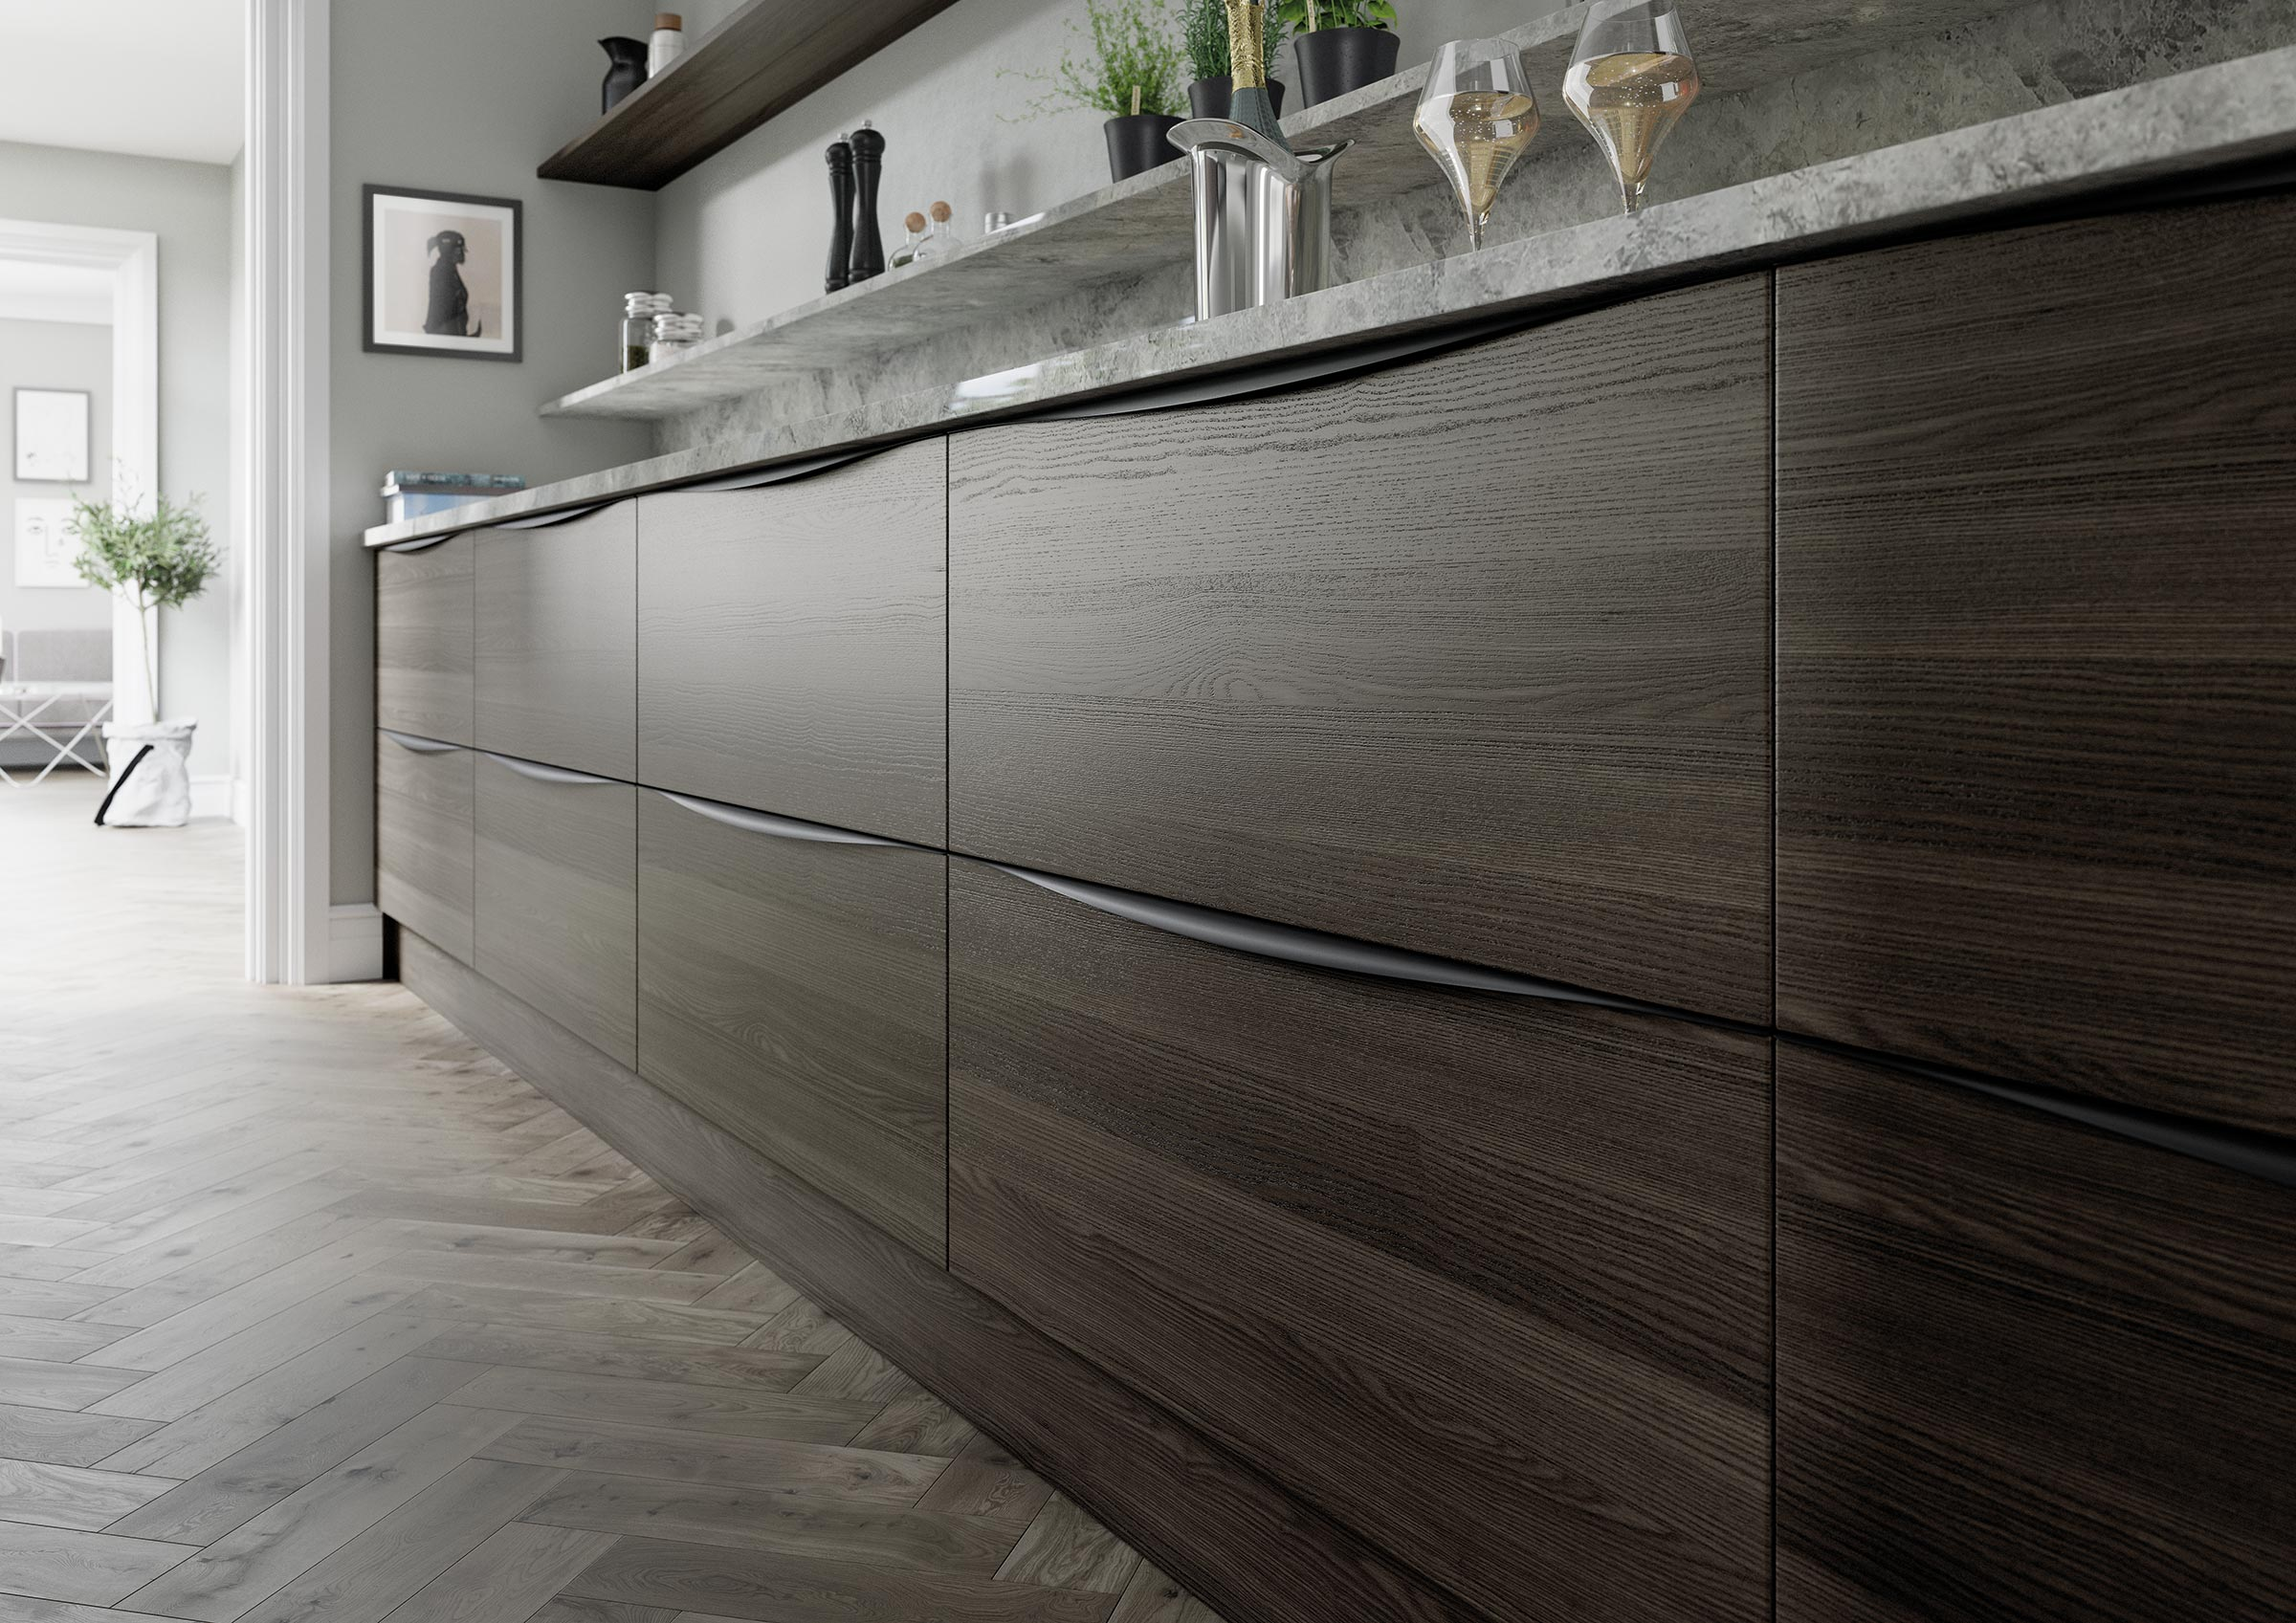 Detailed view of modern carbon stain kitchen base units